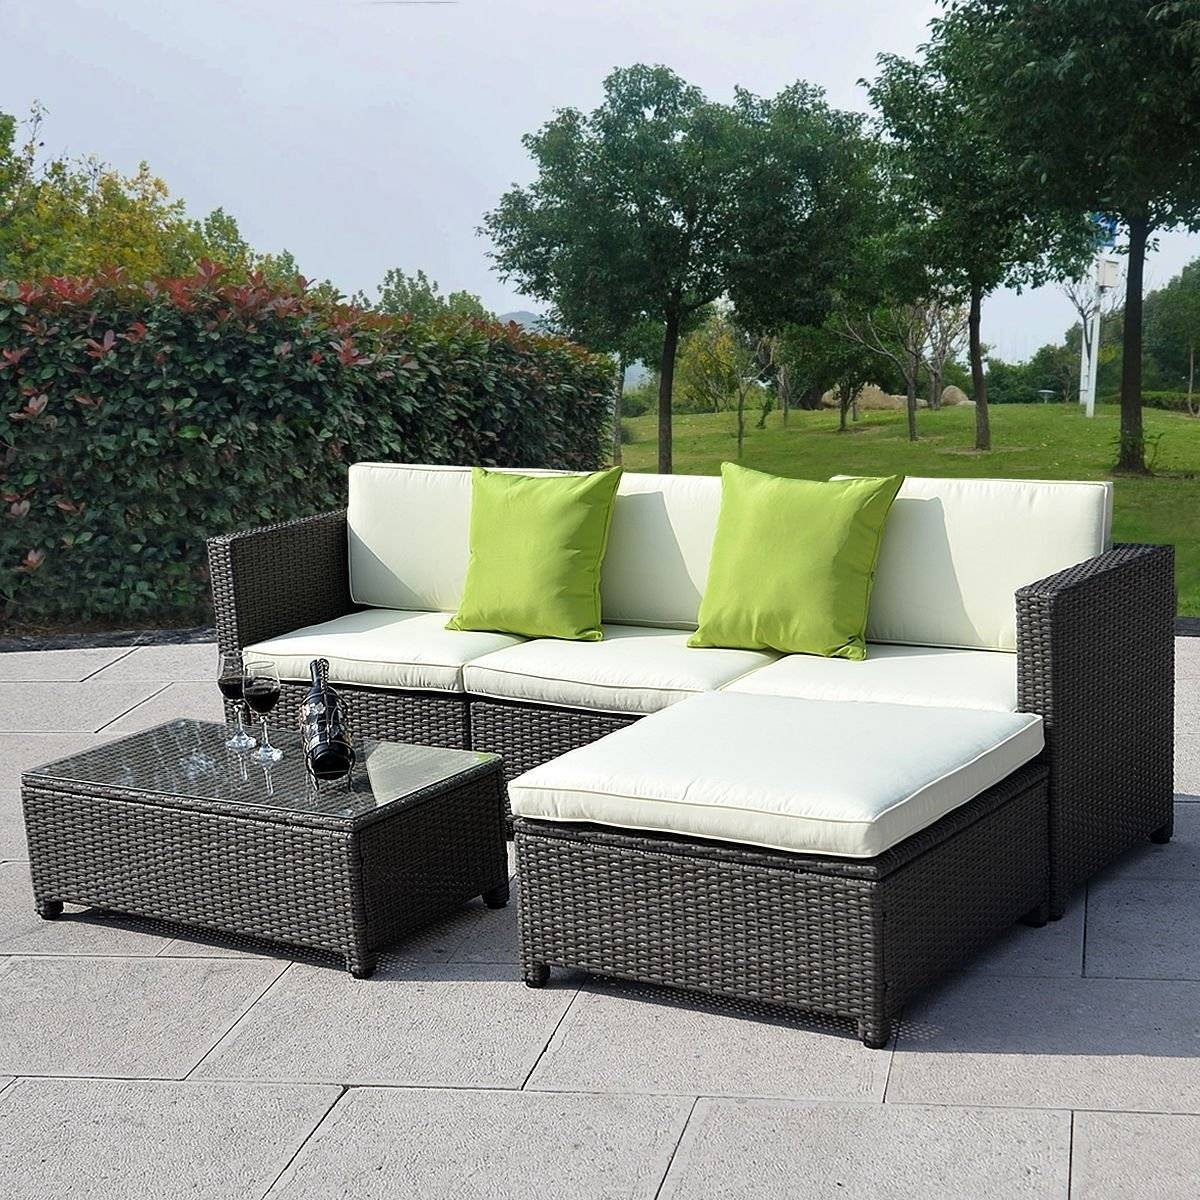 How To Decorate Outdoor Wicker Sofa | Babytimeexpo Furniture Within Black Wicker Sofas (View 10 of 15)